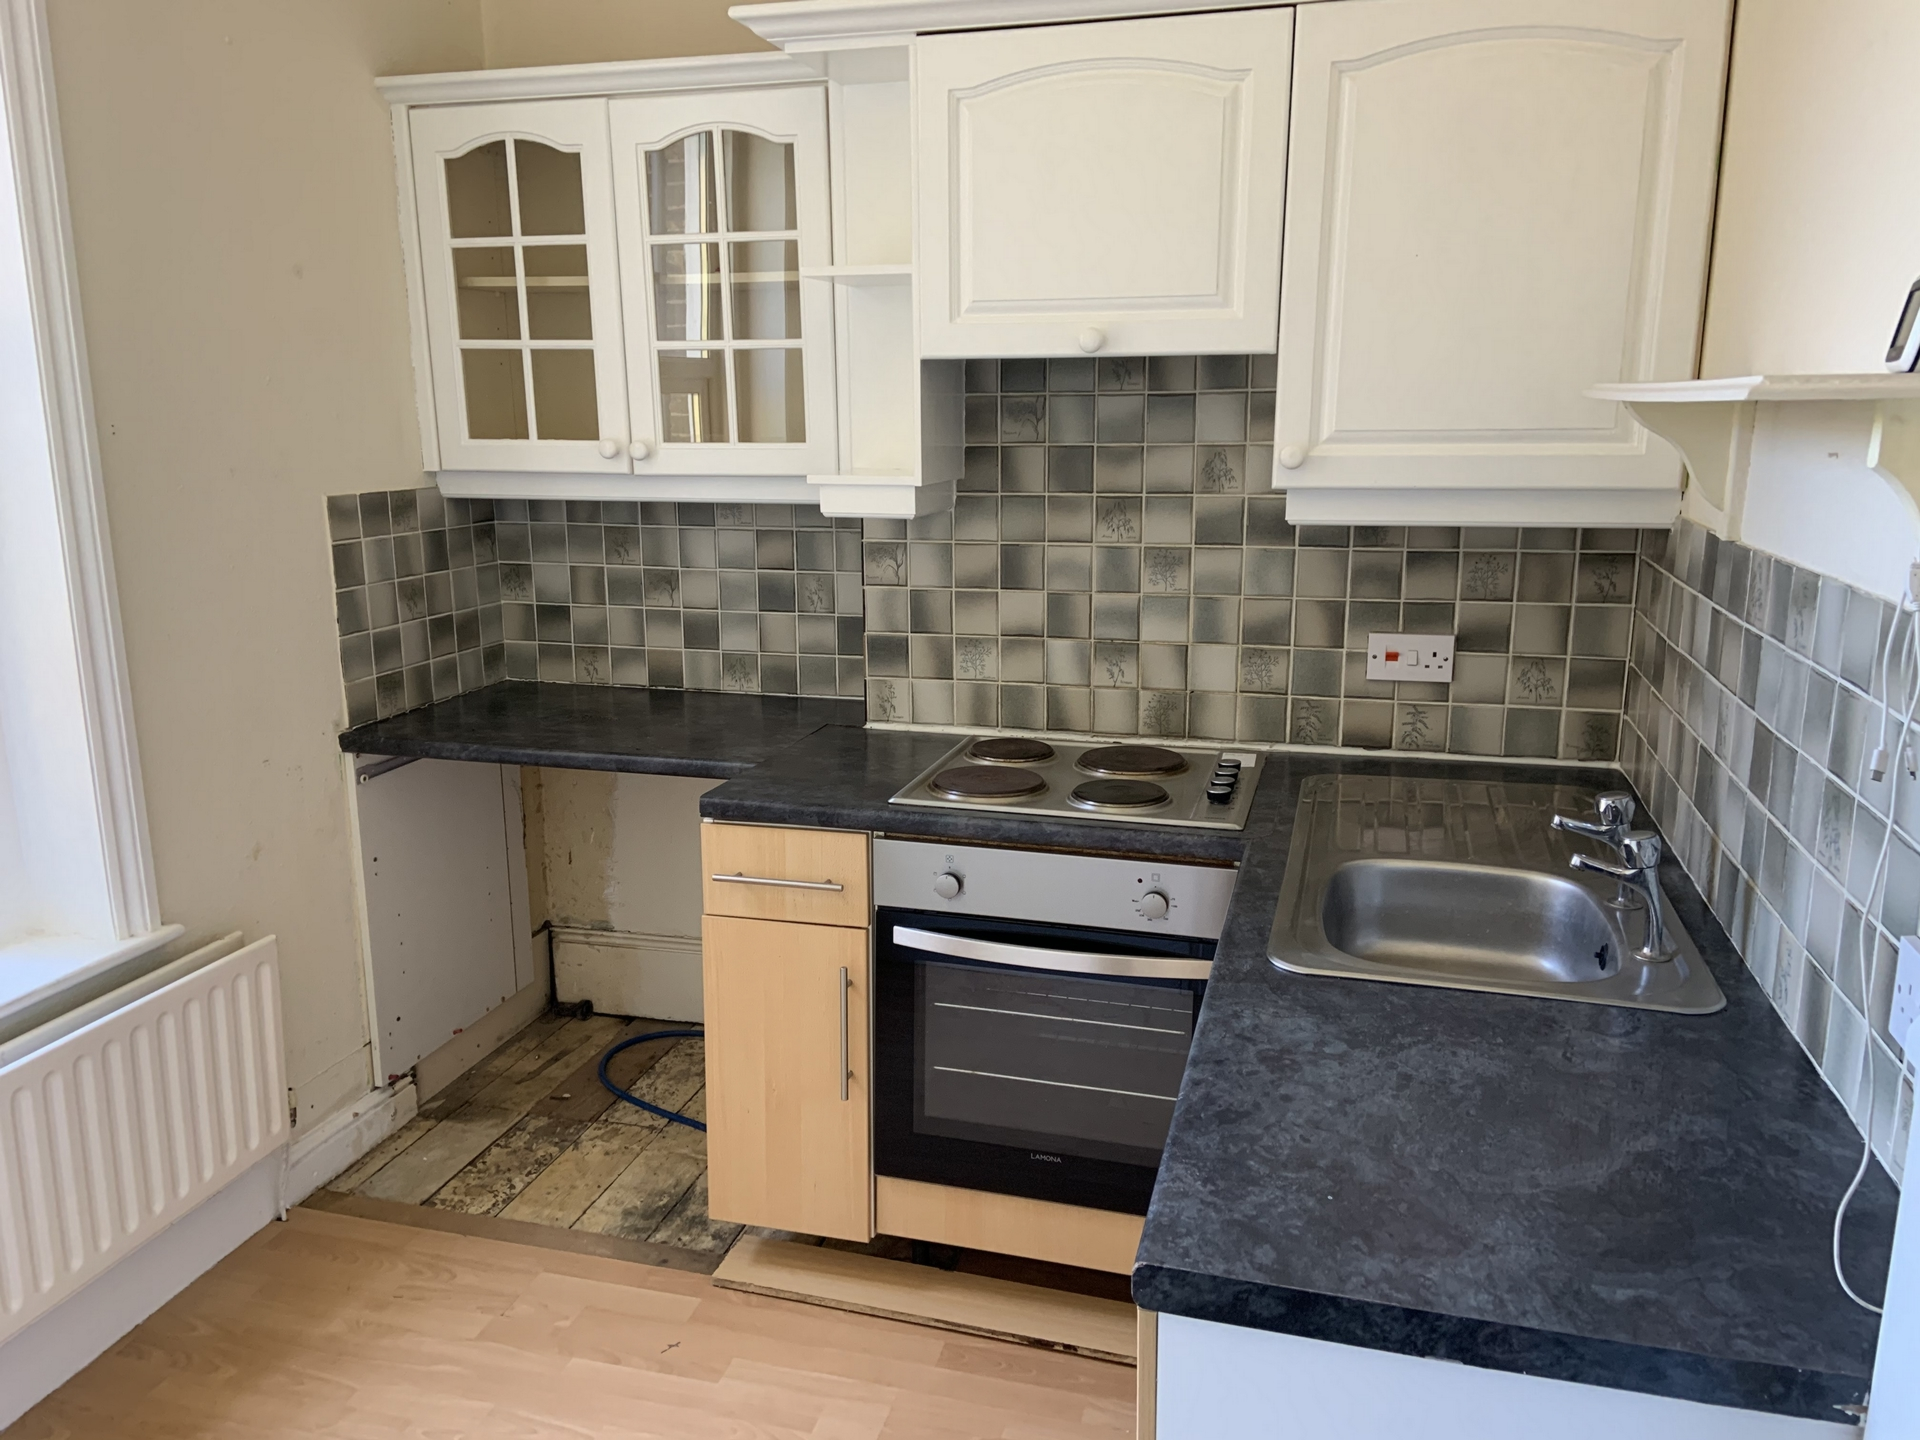 2 bed flat to rent in Sweyn Road, Cliftonville, CT9